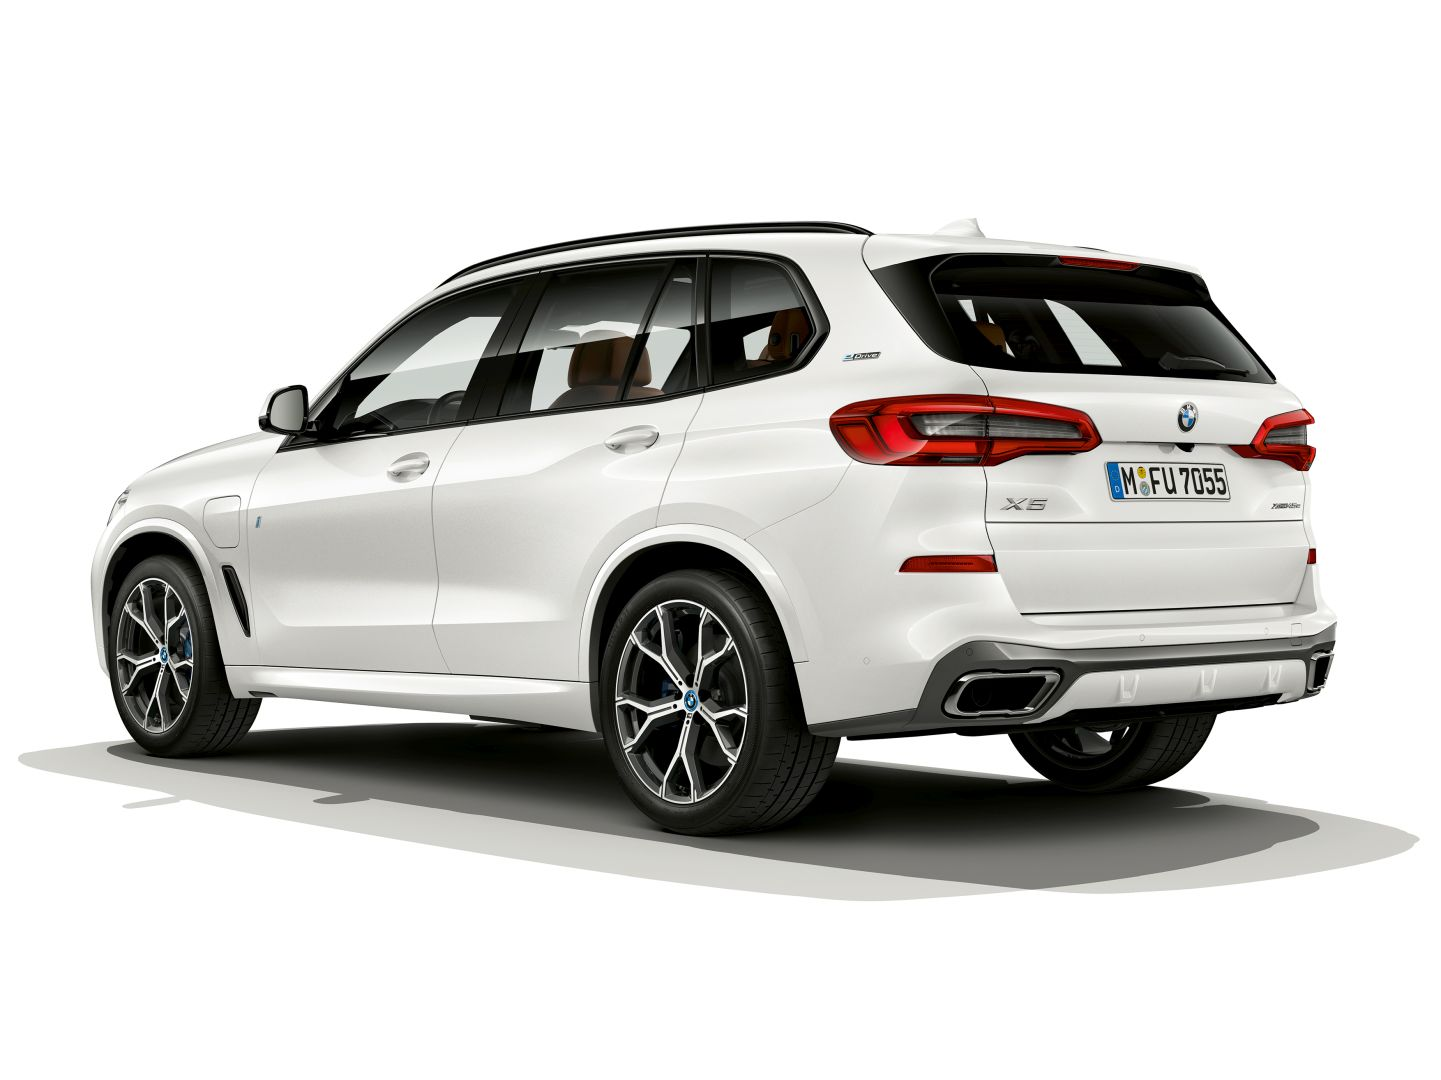 The new BMW X5 xDrive45e will arrive in the United States in 2020